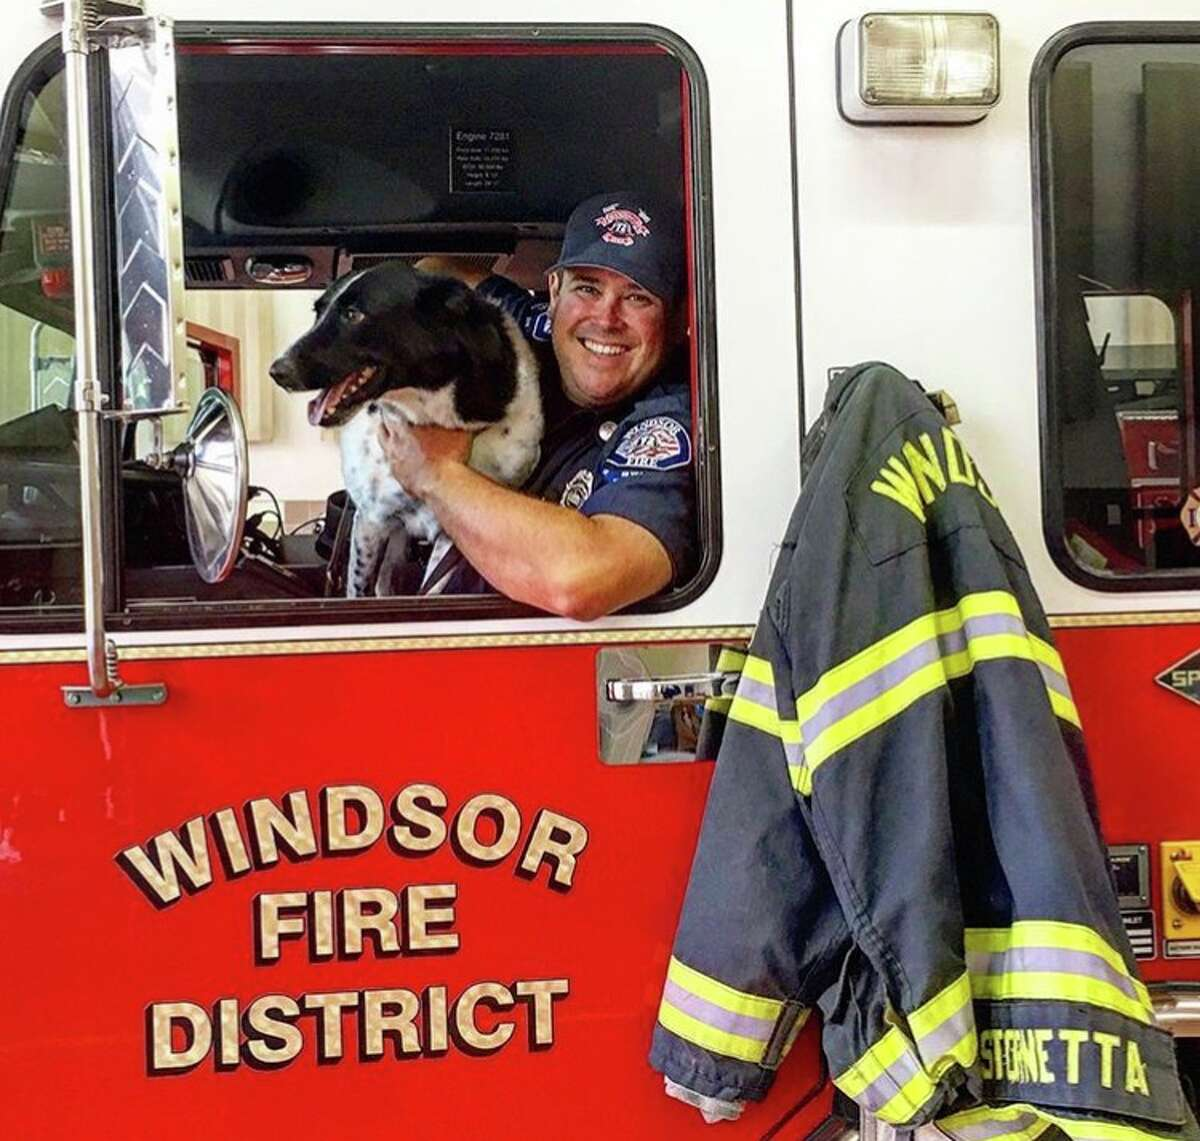 Rocket and his handler, firefighter Mike Stornetta of the Windsor Fire District.